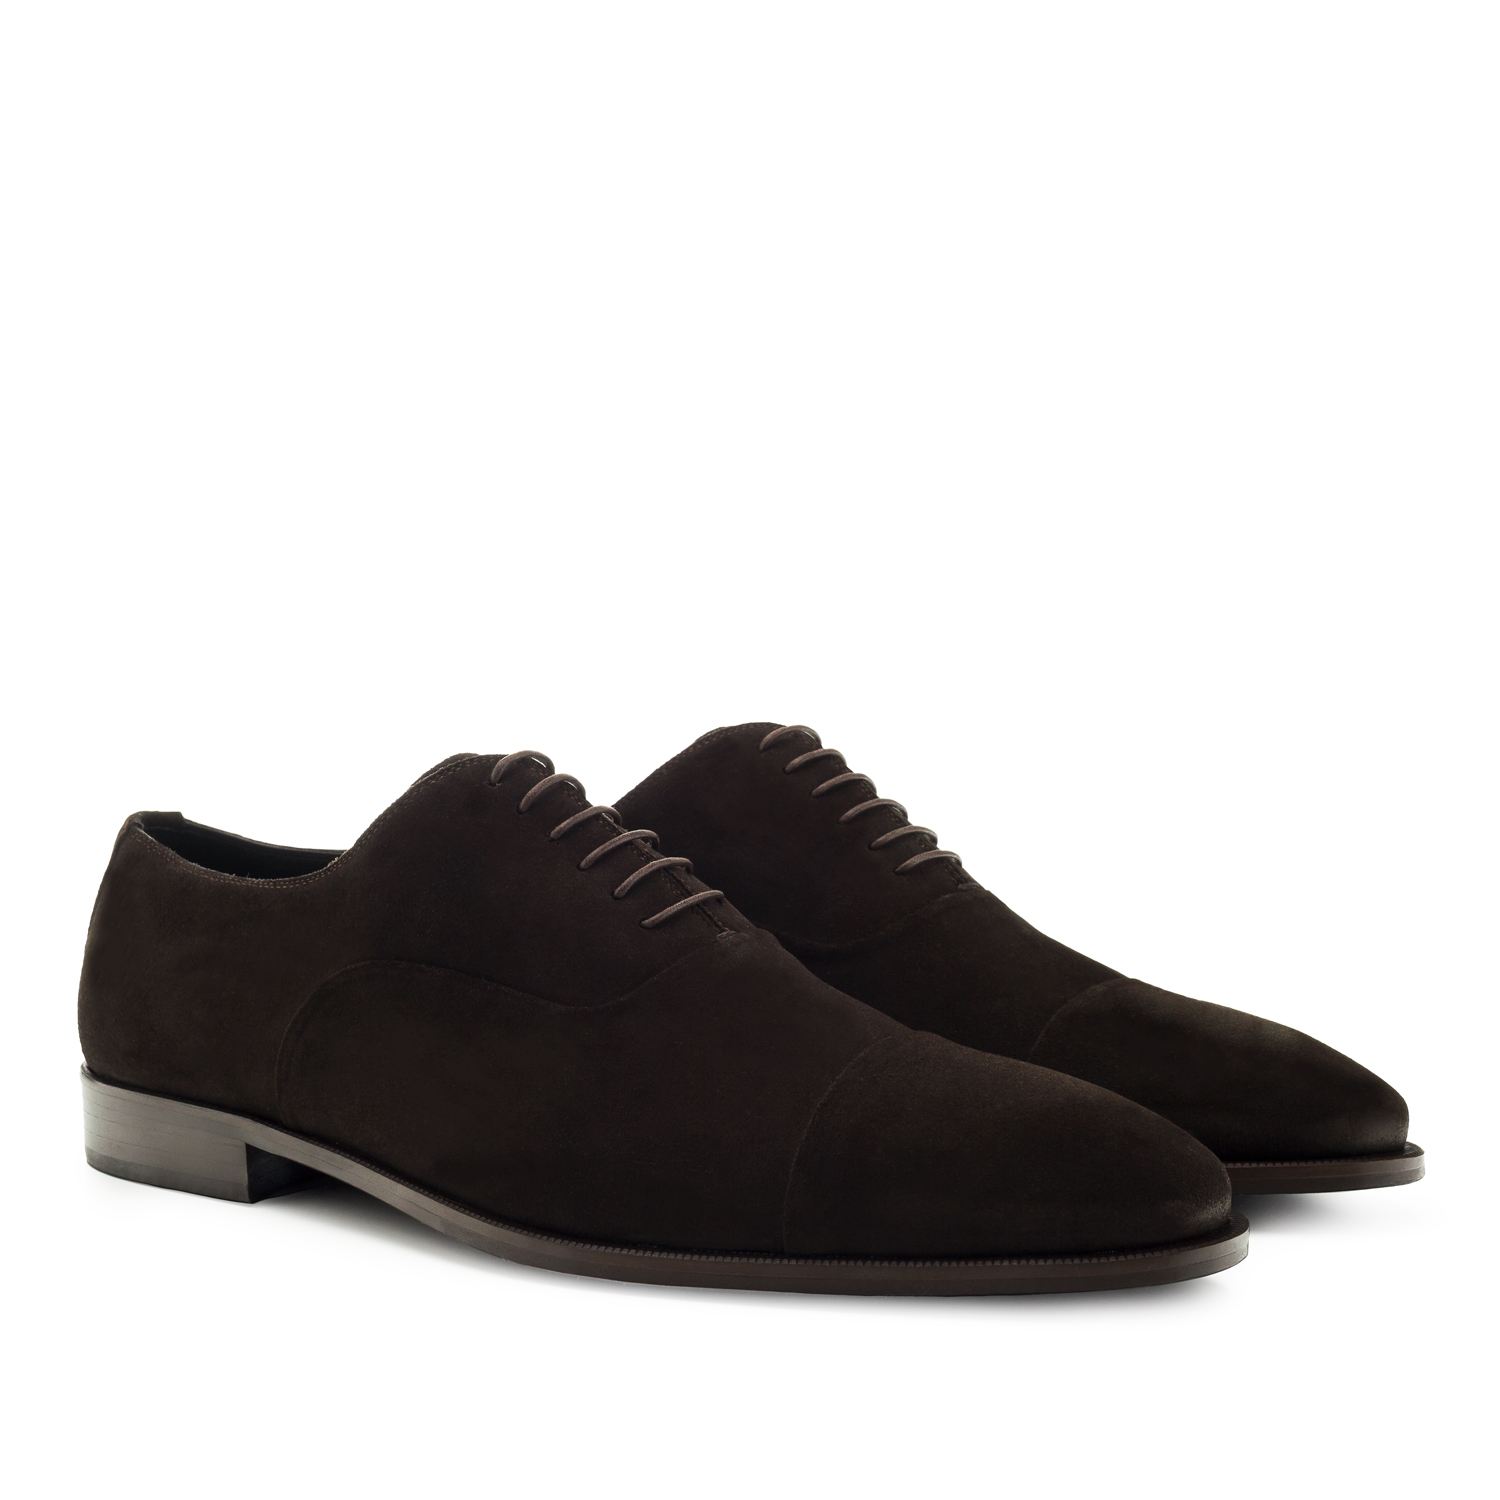 Men's Dress Shoes in Brown Split Leather